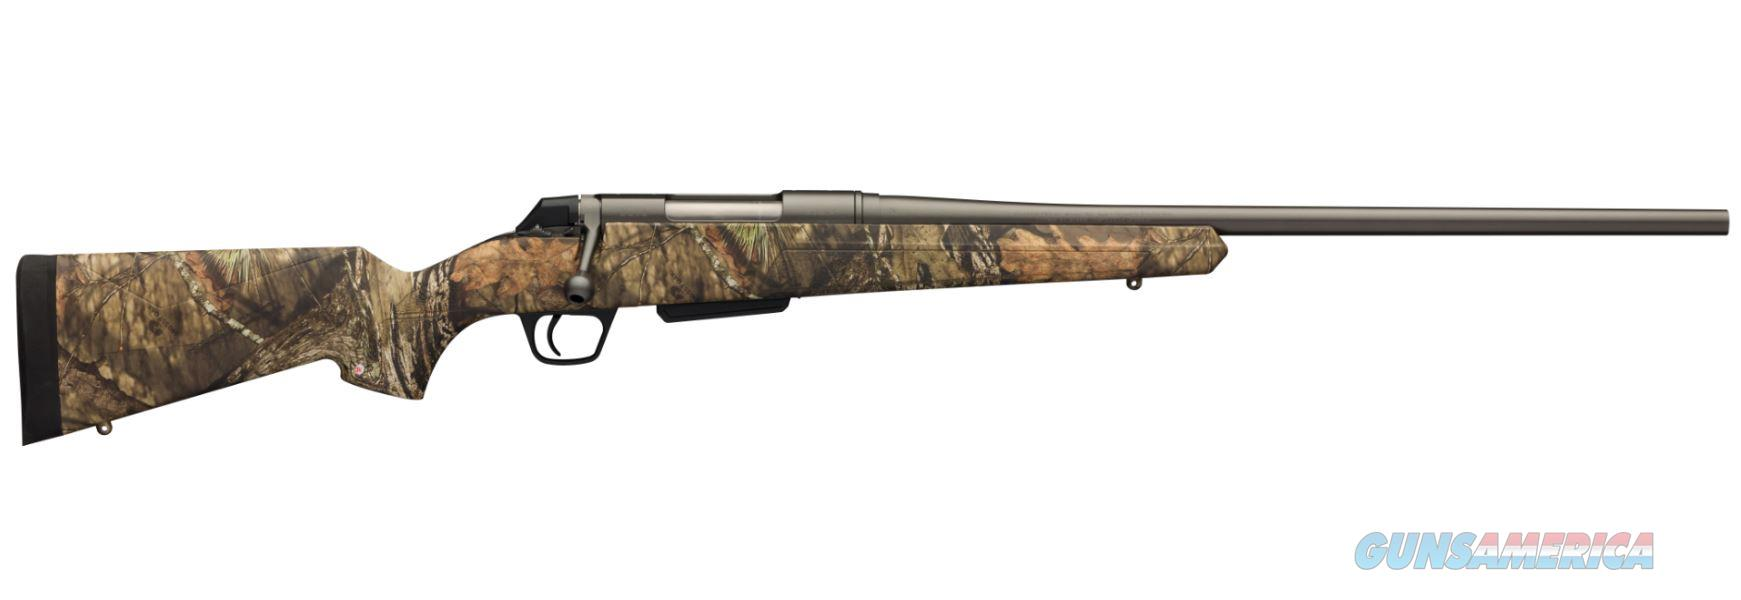 Winchester XPR HNTR CMPT 270WSM BL/MOBUC MOSSY OAK BREAK-UP COUNTRY  Guns > Rifles > W Misc Rifles